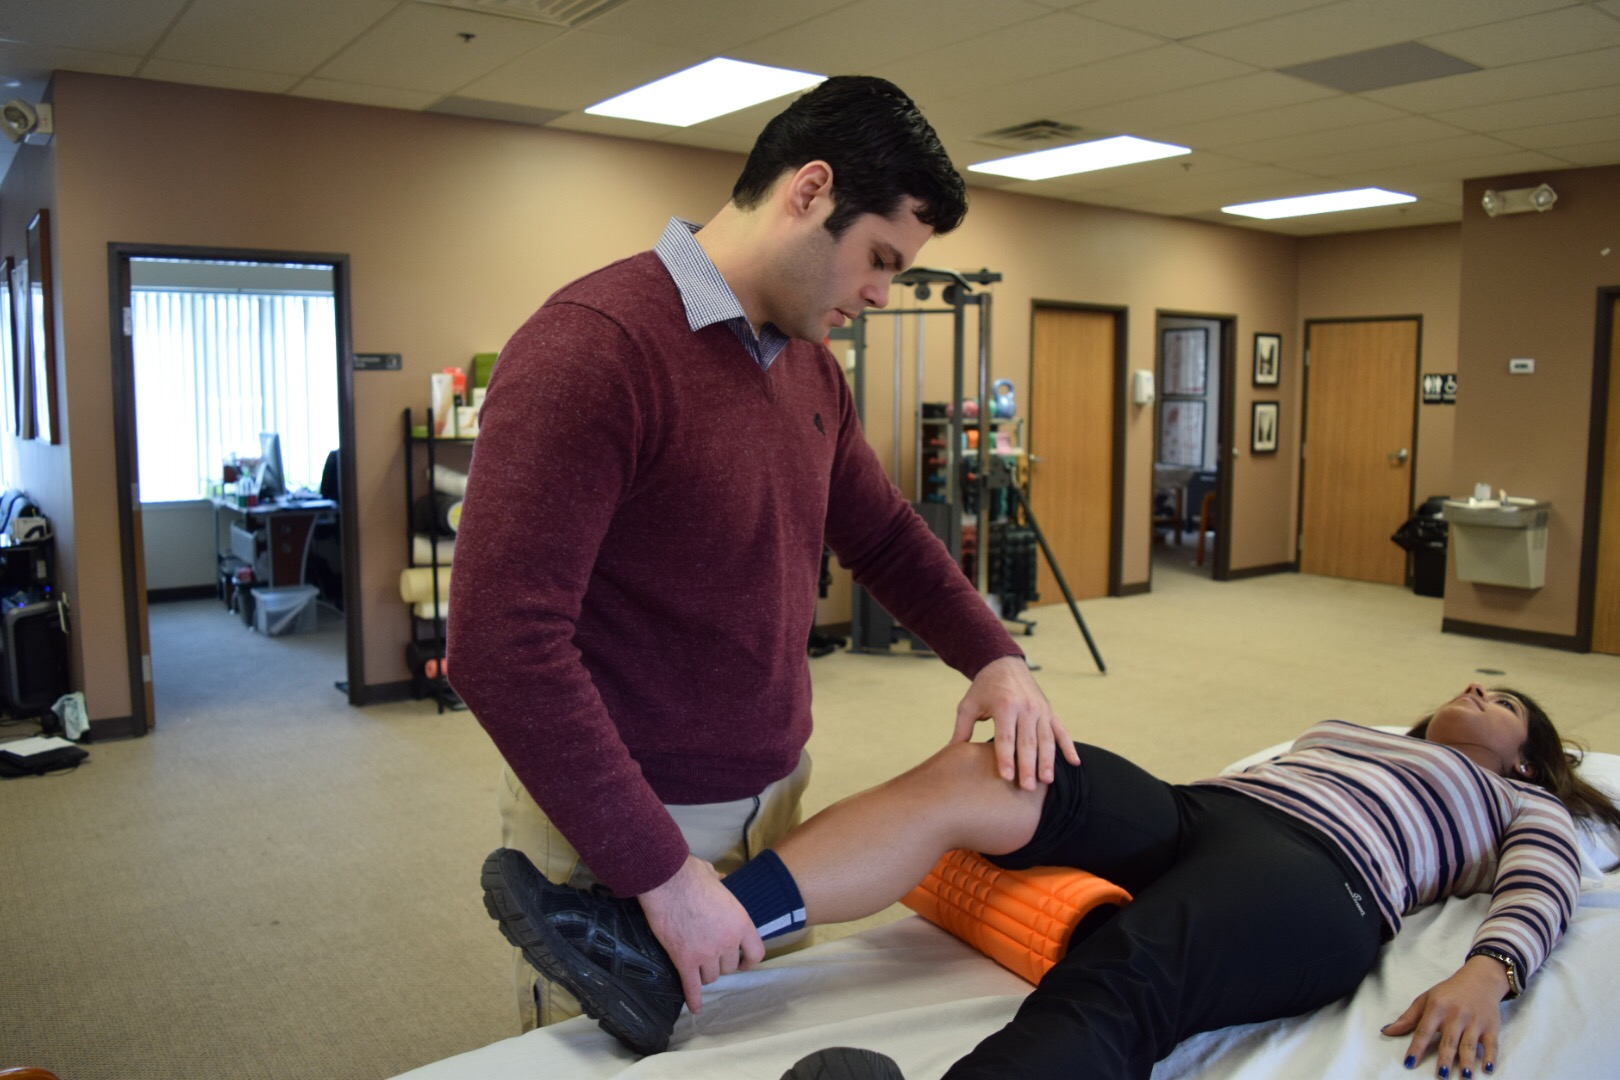 physical therapist dating patient